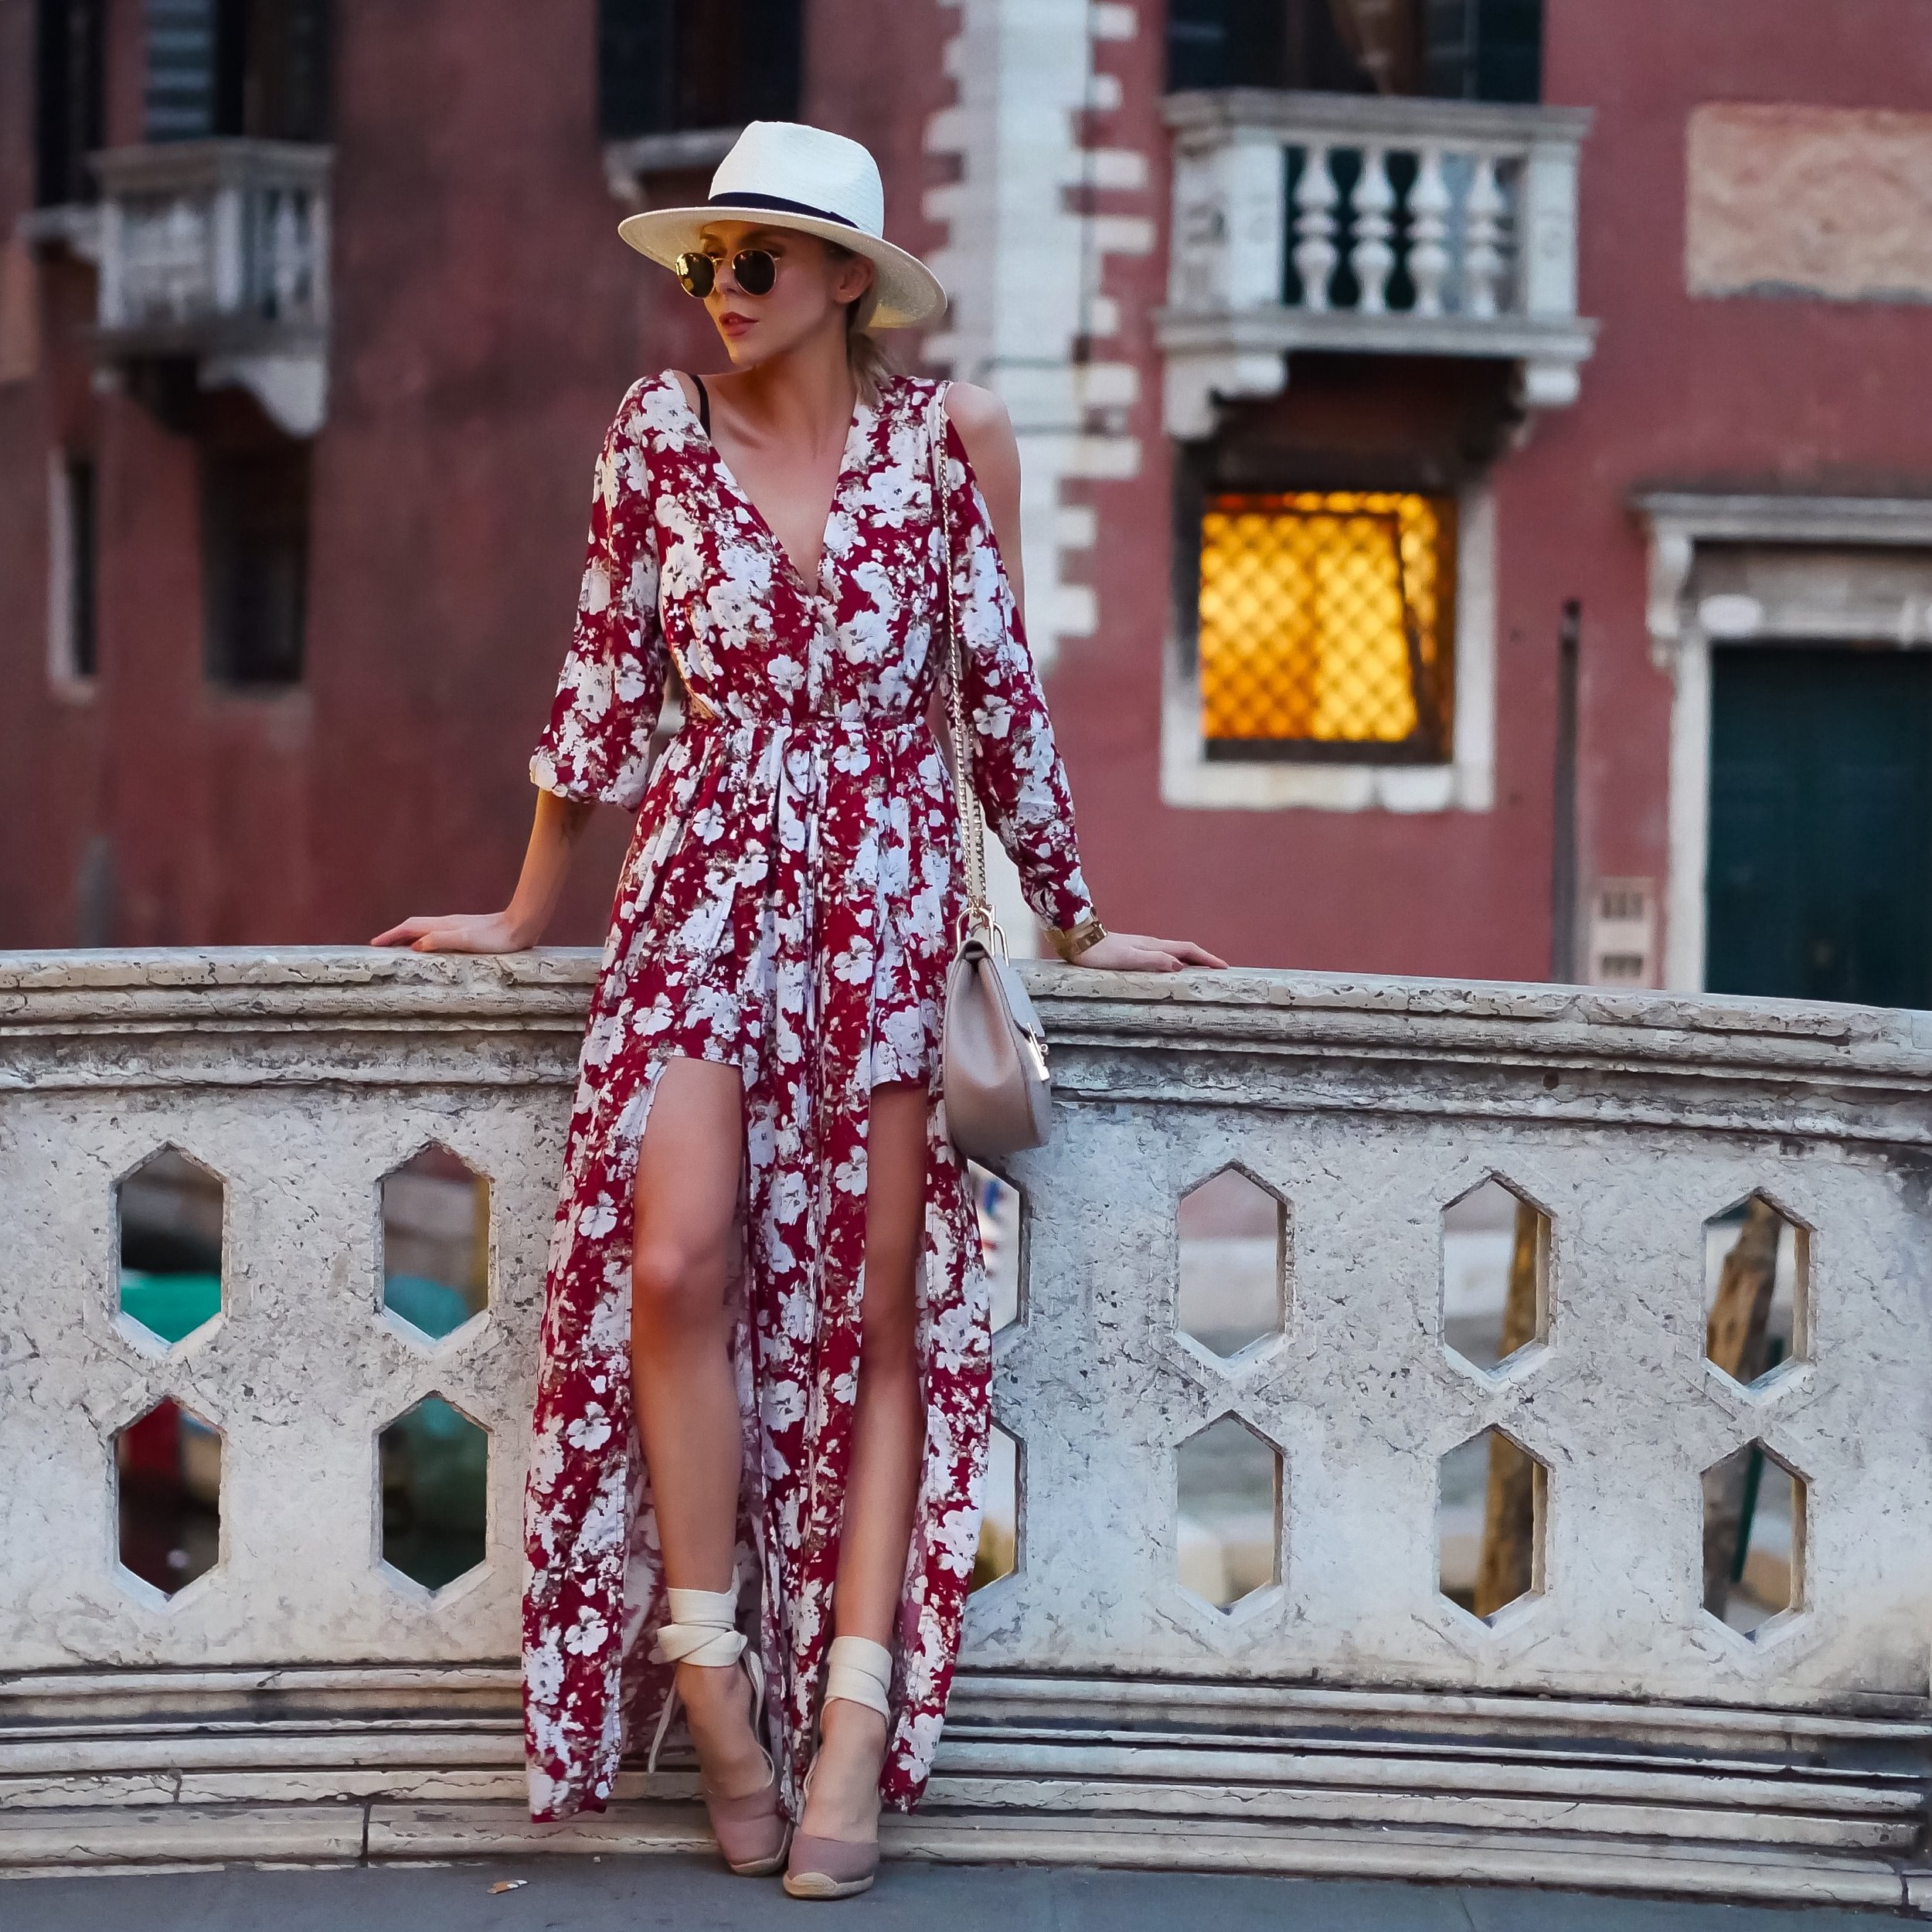 venice, guide to venice, italy travel blog, travel, italy, venice city guide, what to do in venice, venice guide, london fashion girl, laura blair, travel blogger, fashion style, what to wear in venice italy